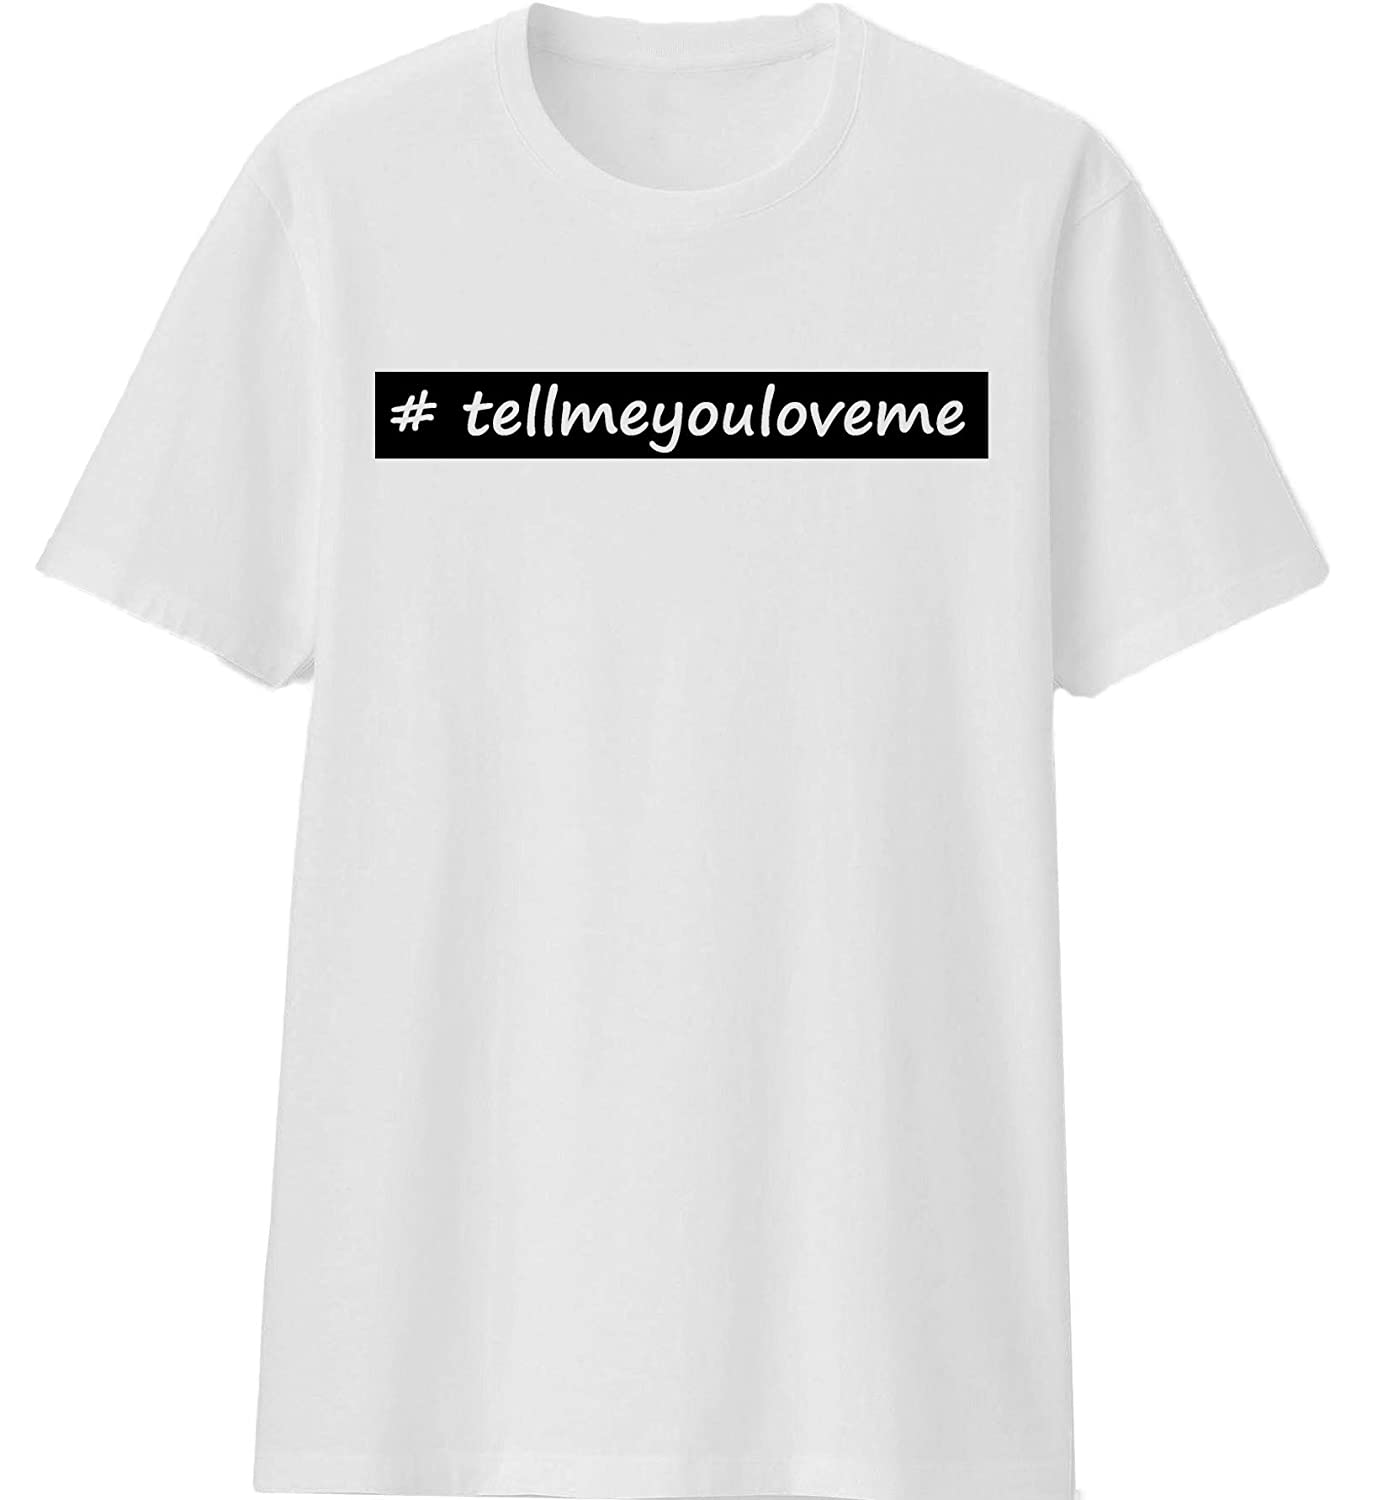 T Tell Love co Raze You ukClothing Womens London Me ShirtAmazon FJ1TKc3l